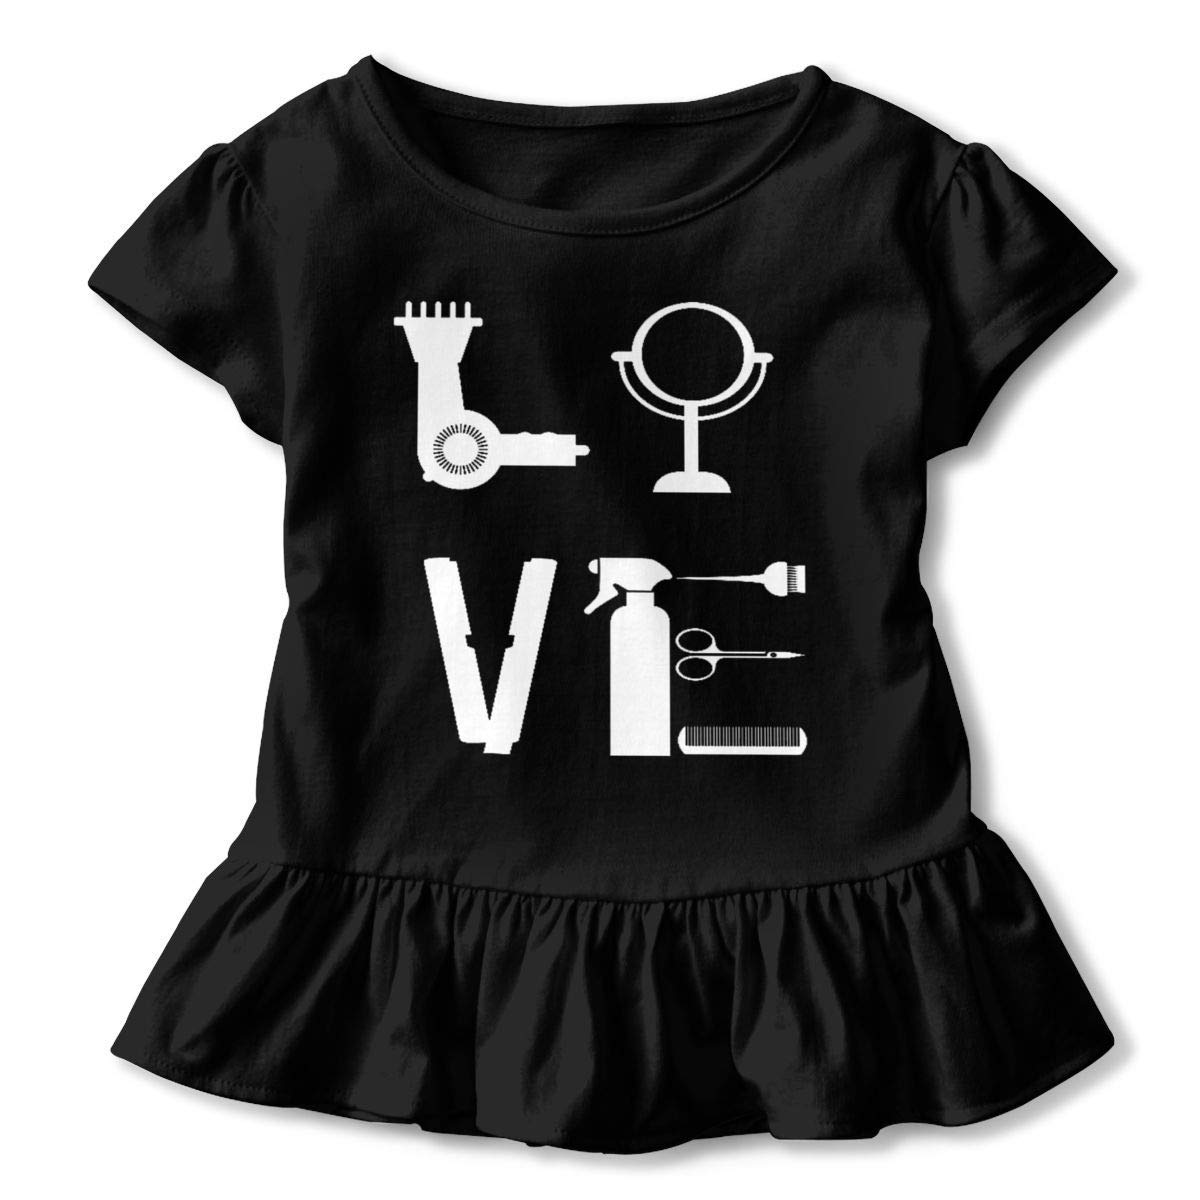 lu fangfangc Hairstylist Love for Her Hair Stylist T-Shirt Toddler Flounced T Shirts Cartoon Outfits for 2-6T Baby Girls